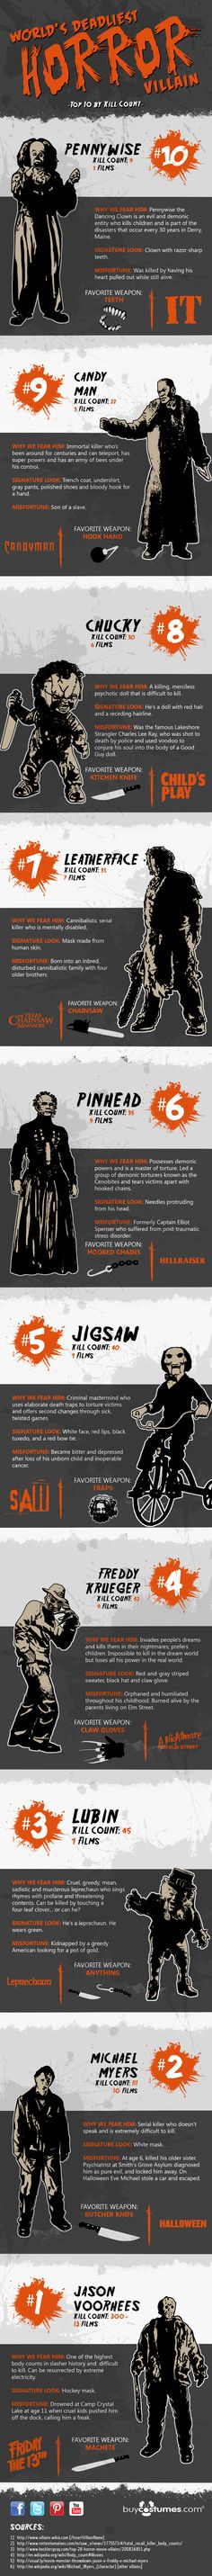 Top 10 Horror Movie Villains by Kill Count. Click through to the site to pin your favorite Villain.